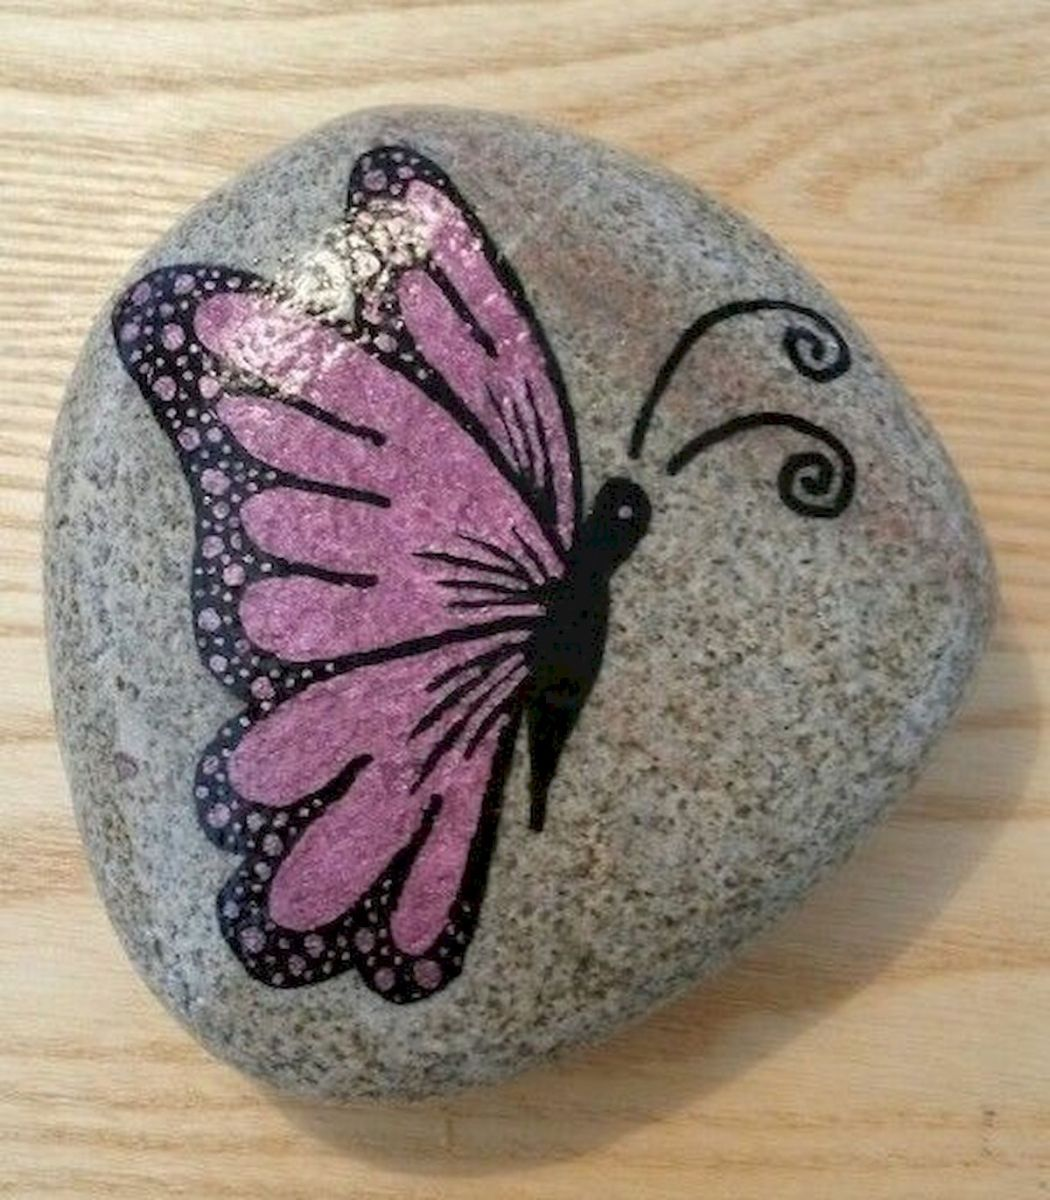 55 Cute DIY Painted Rocks Animals Butterfly Ideas (26)